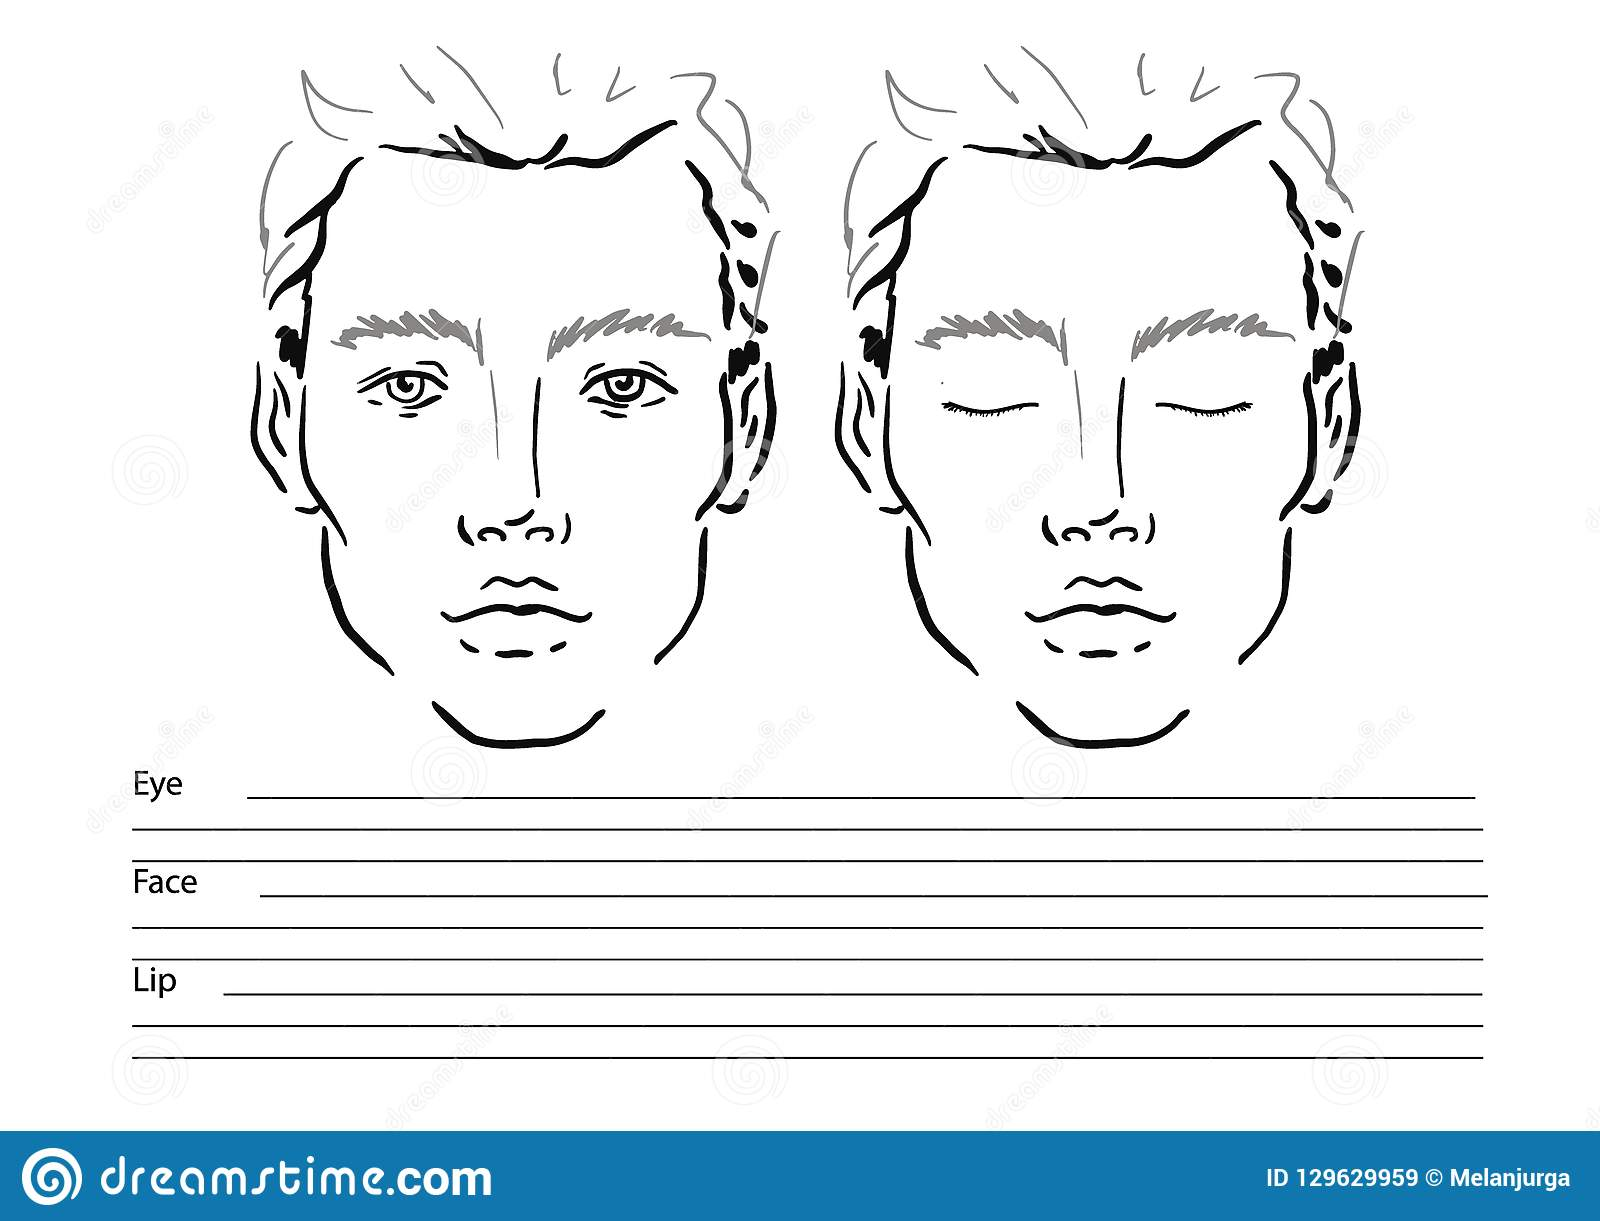 Blank Face Diagram Botox – HD Wallpapers